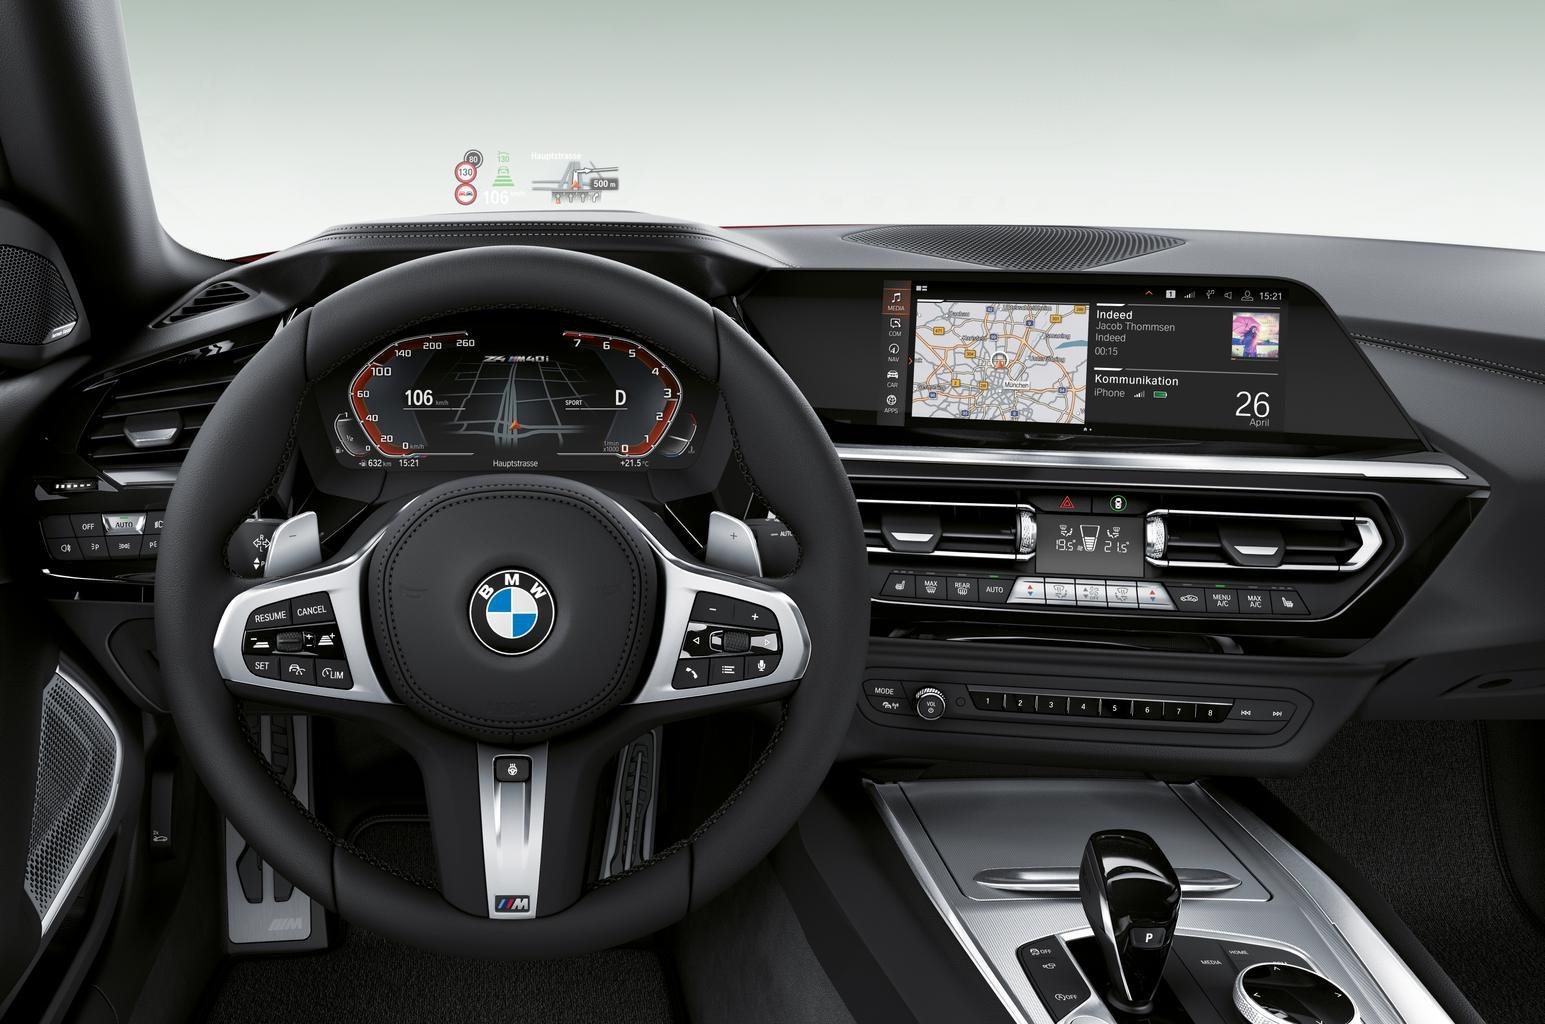 2019 BMW Z4 dashboard